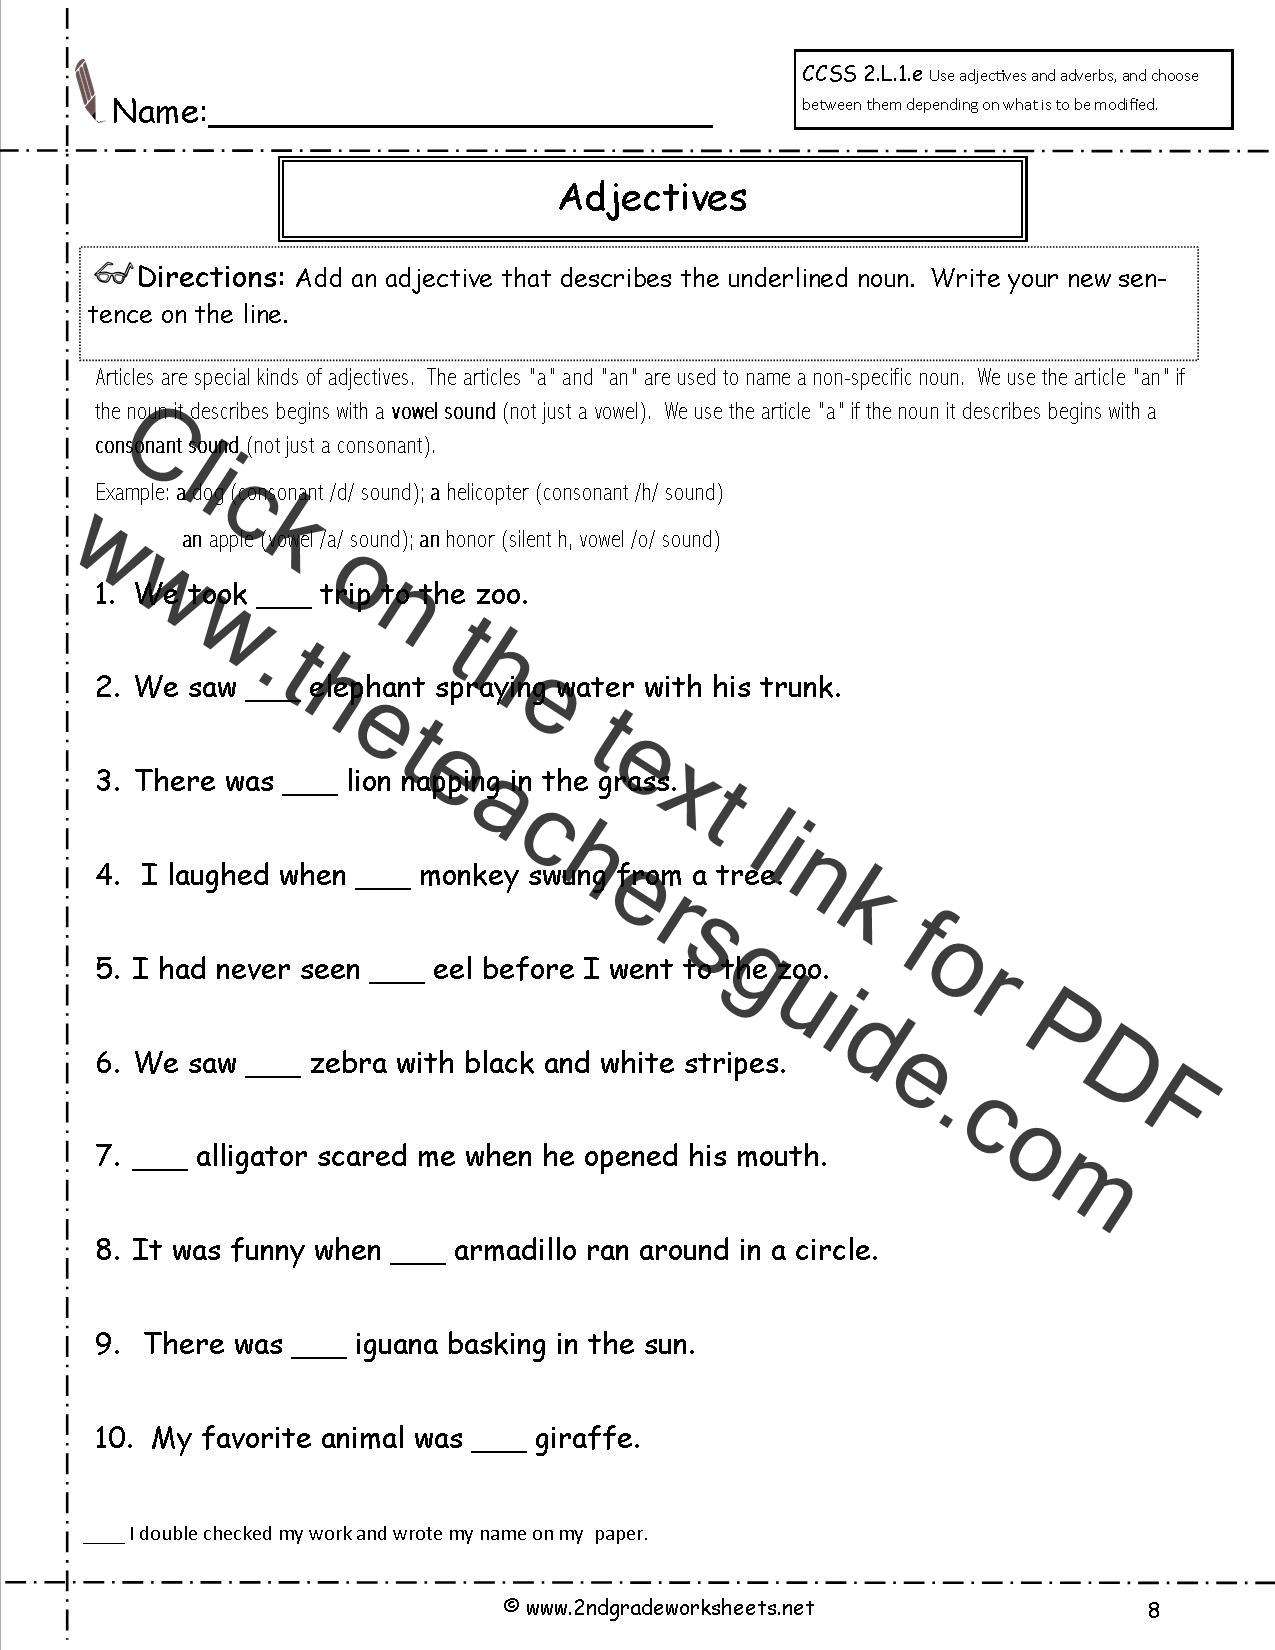 Free LanguageGrammar Worksheets and Printouts – Second Grade Worksheets Free